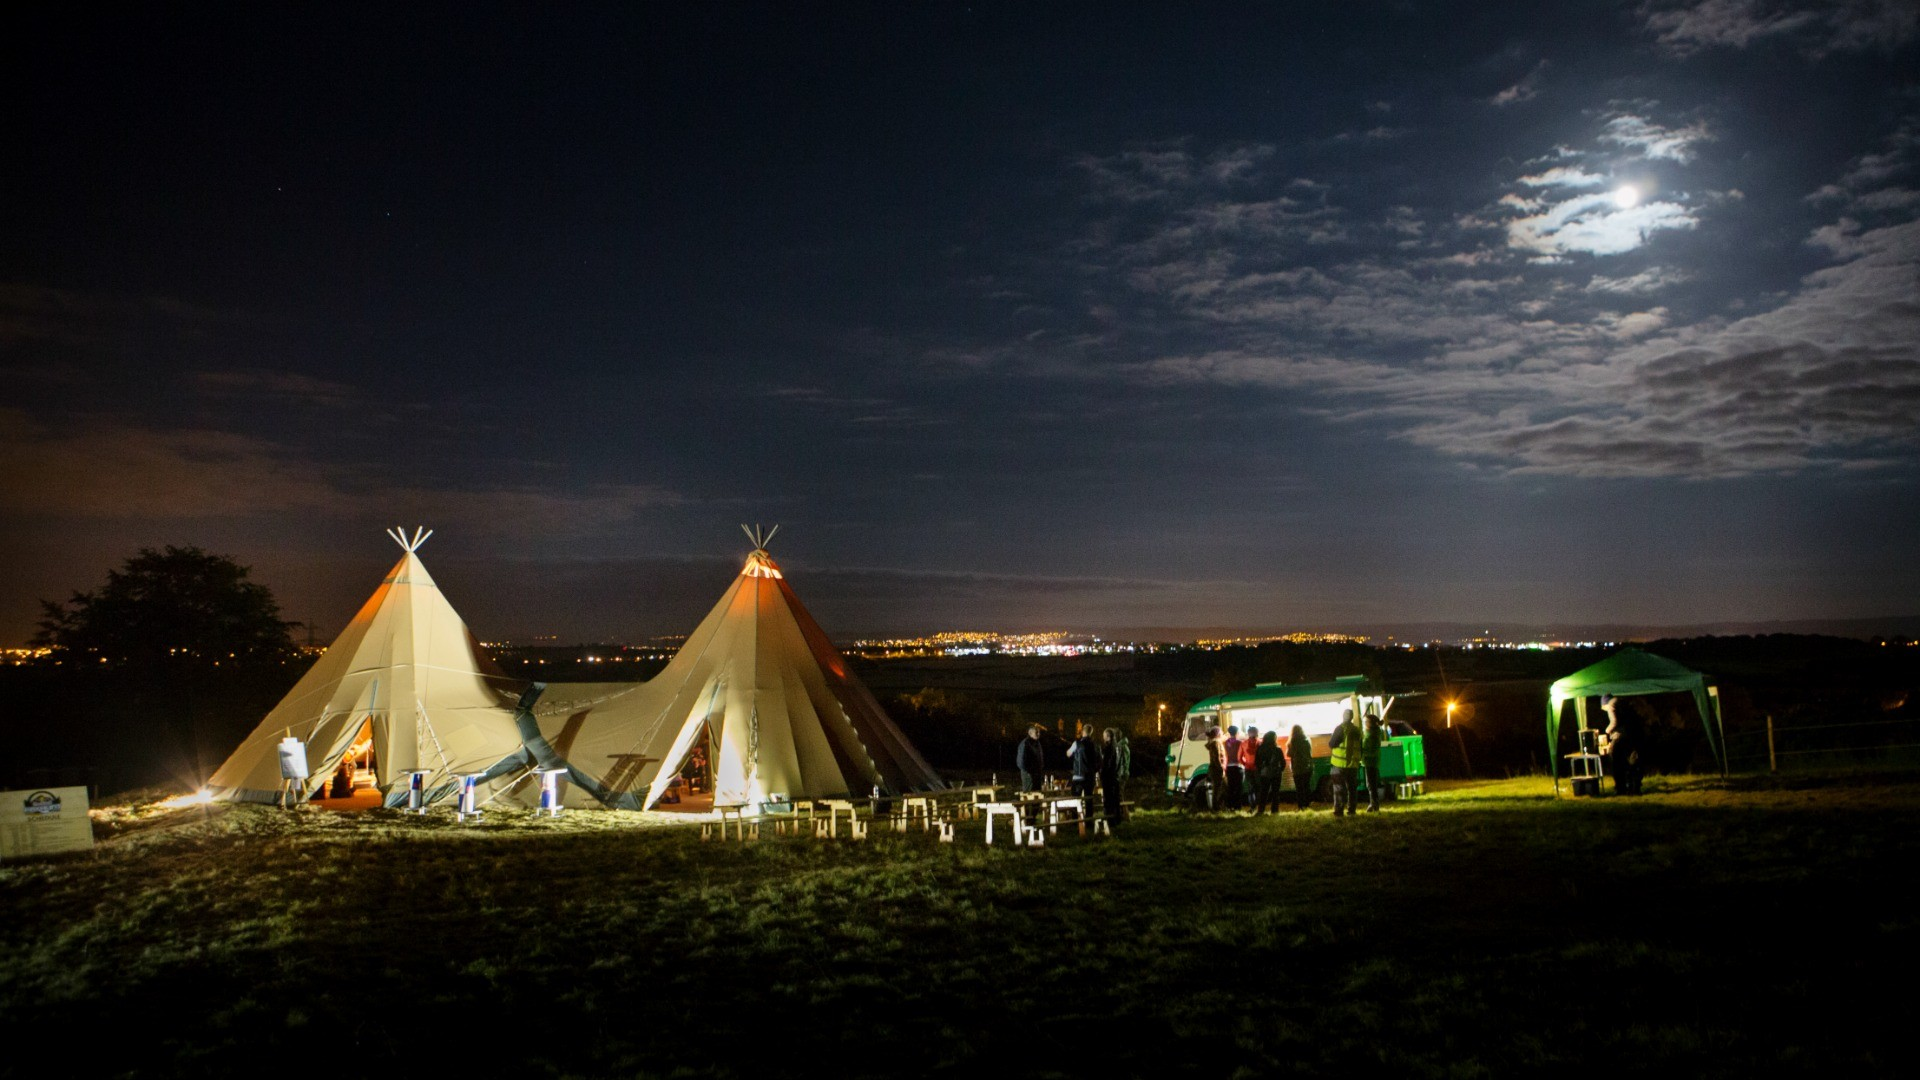 In the evening, chill out with a festival vibe in the tipi, complete with DJ